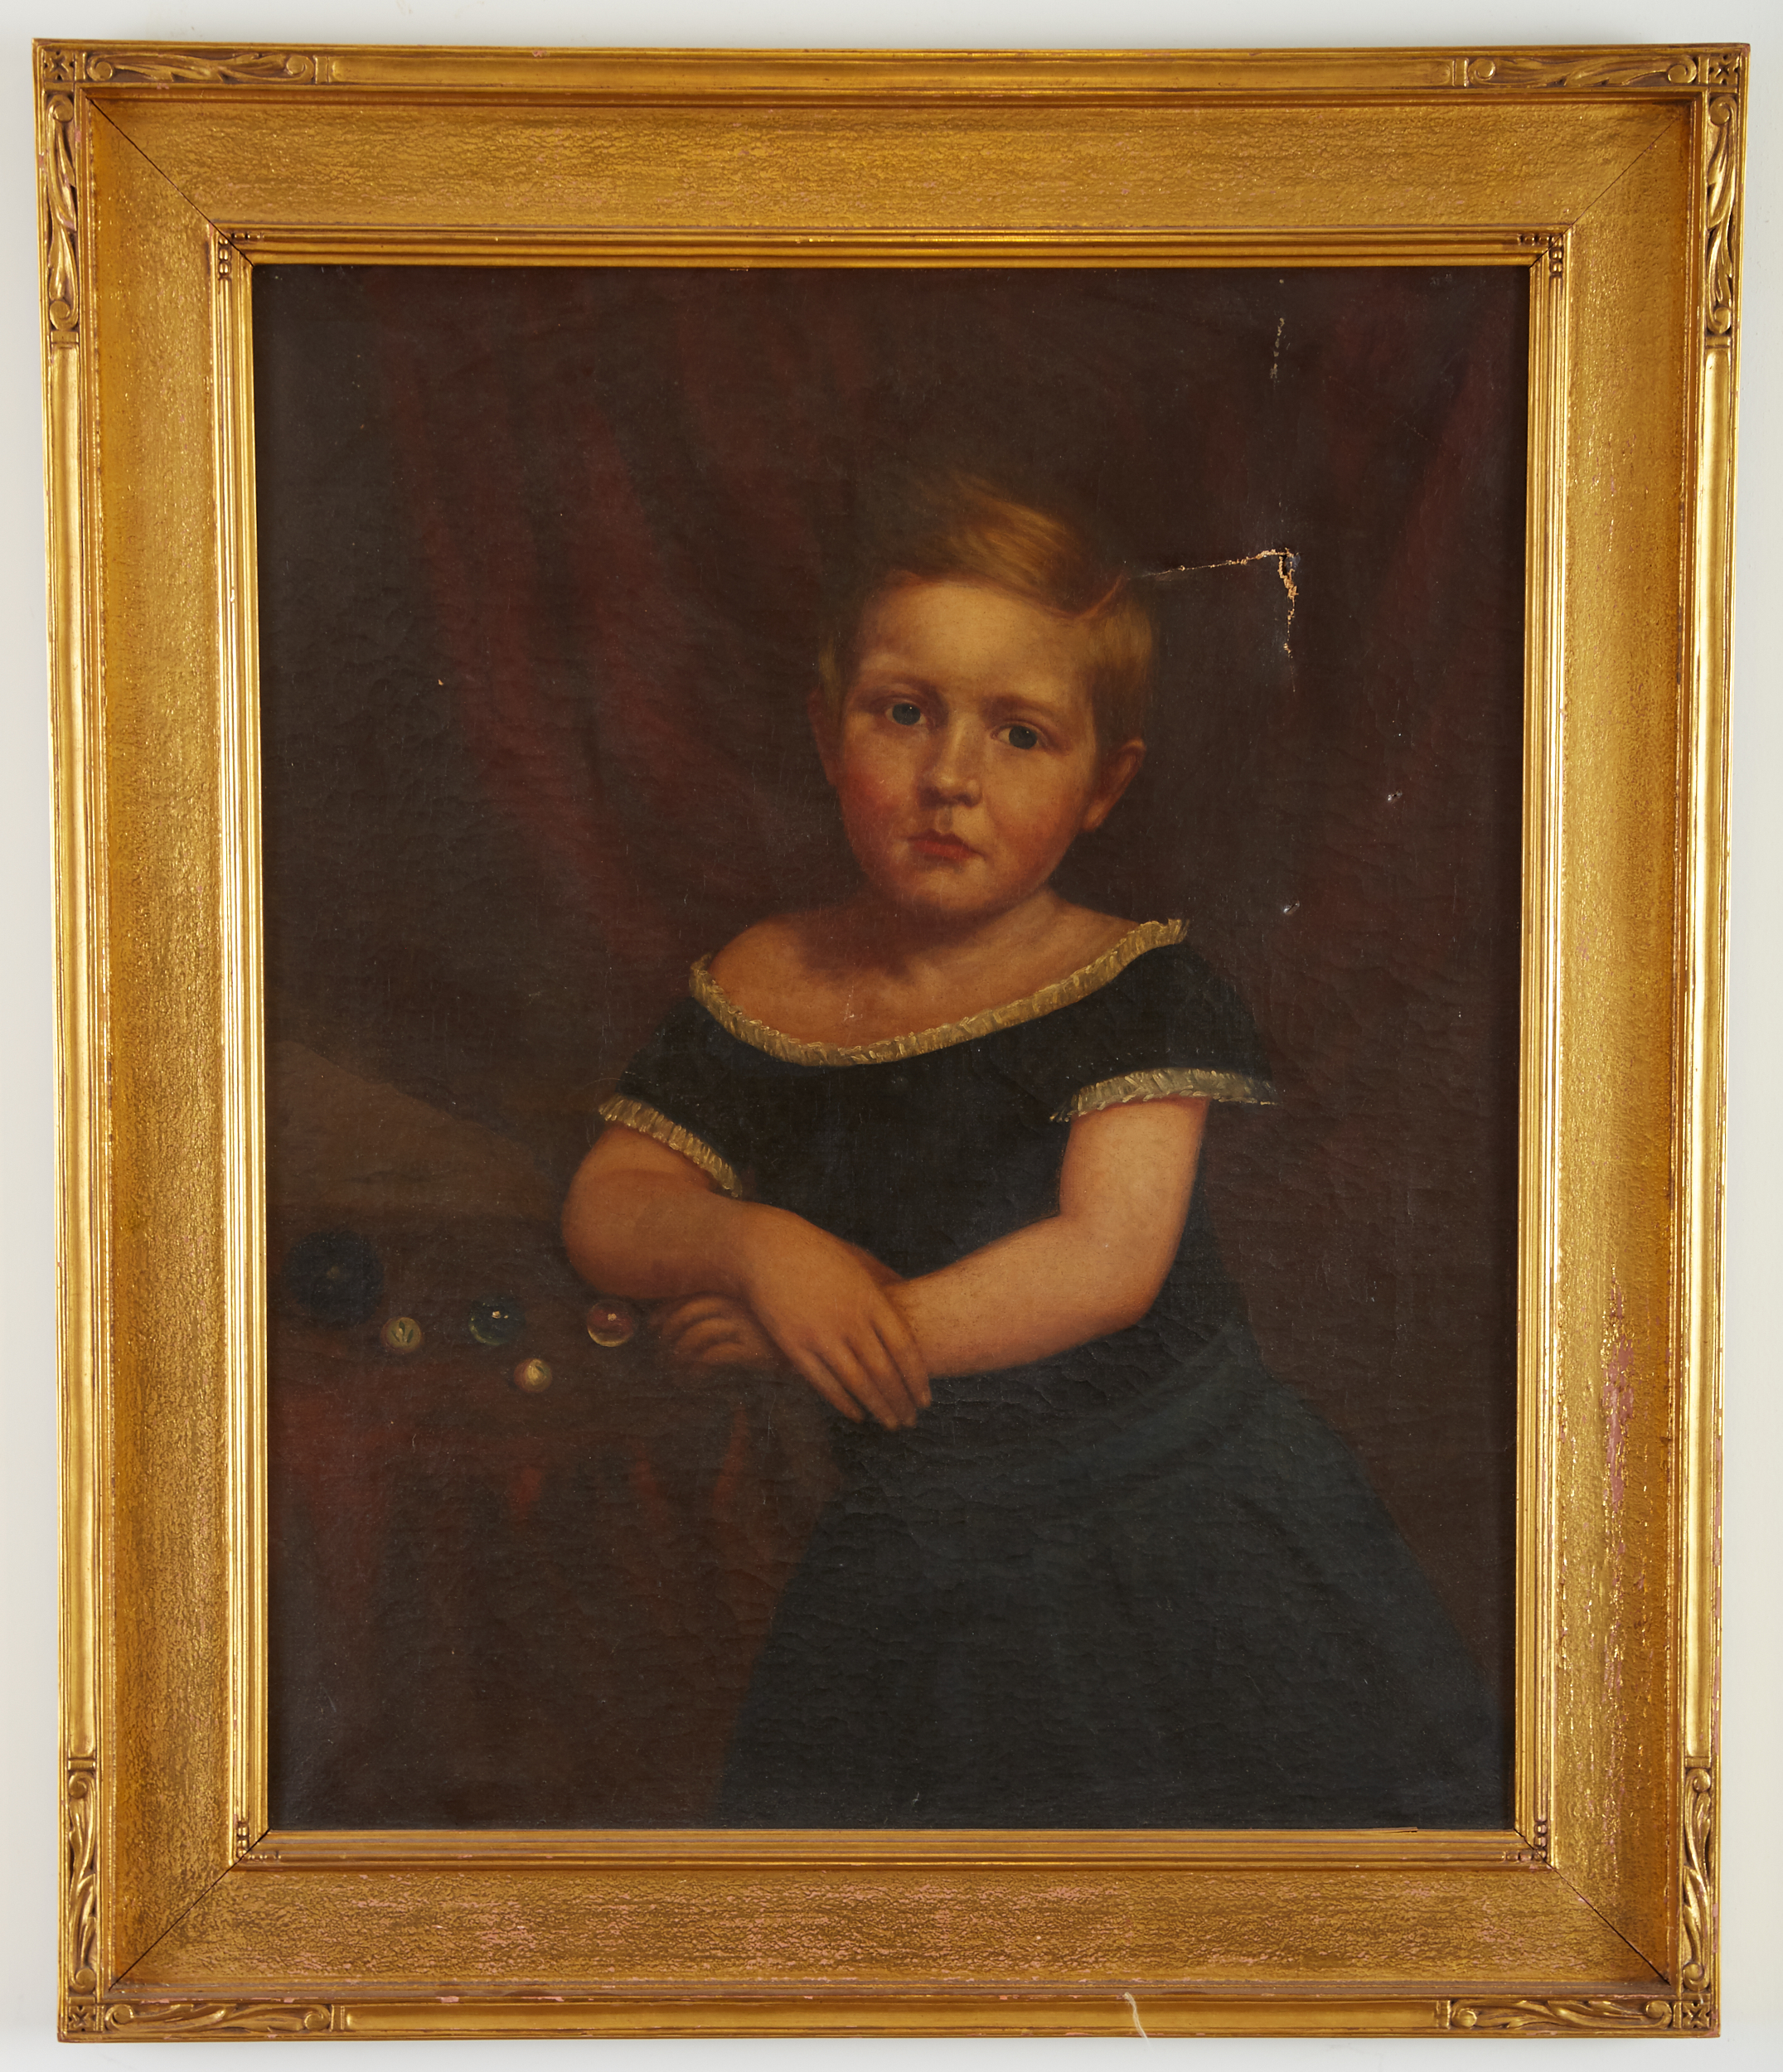 Lot 2 - 19th Century American School Portrait of a Girl Unsigned